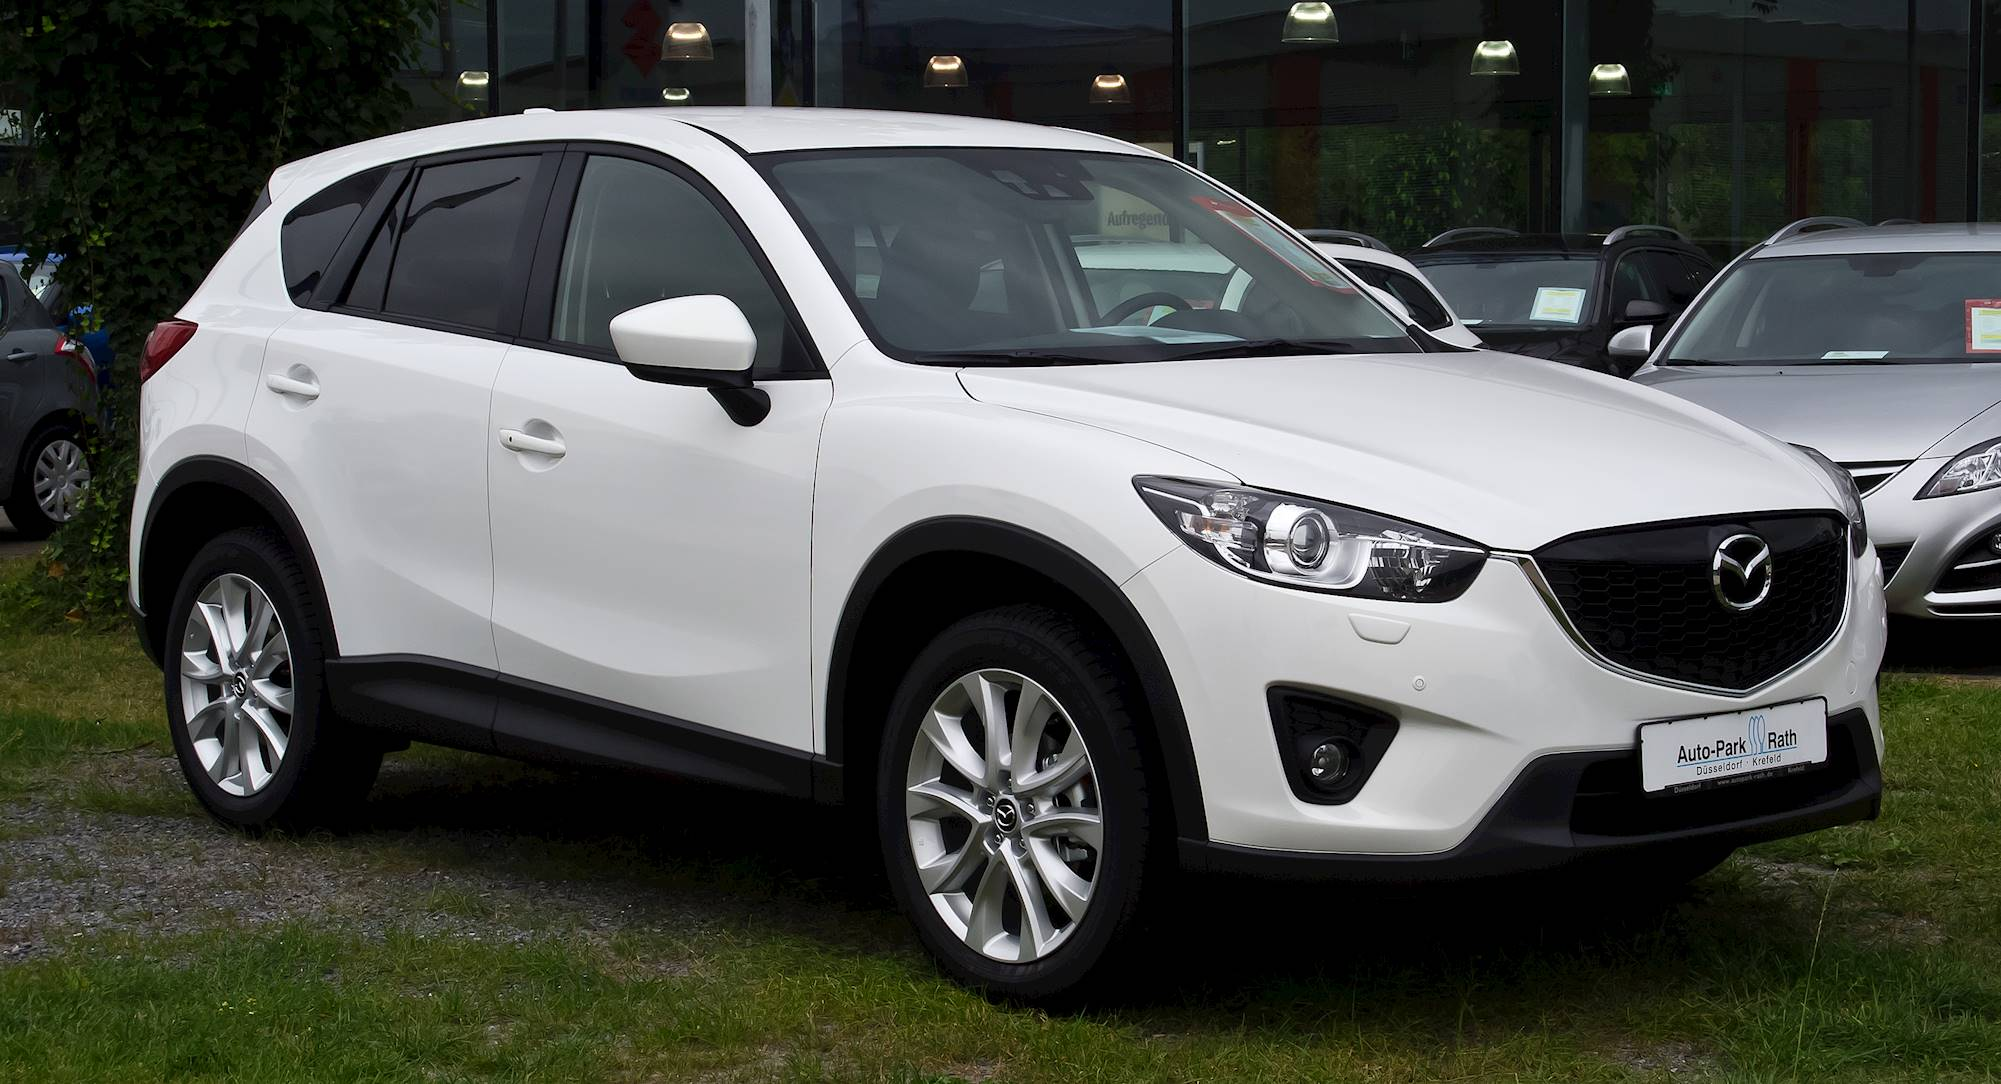 2014 Mazda CX-5 Grand Touring - 4dr SUV 2.5L auto